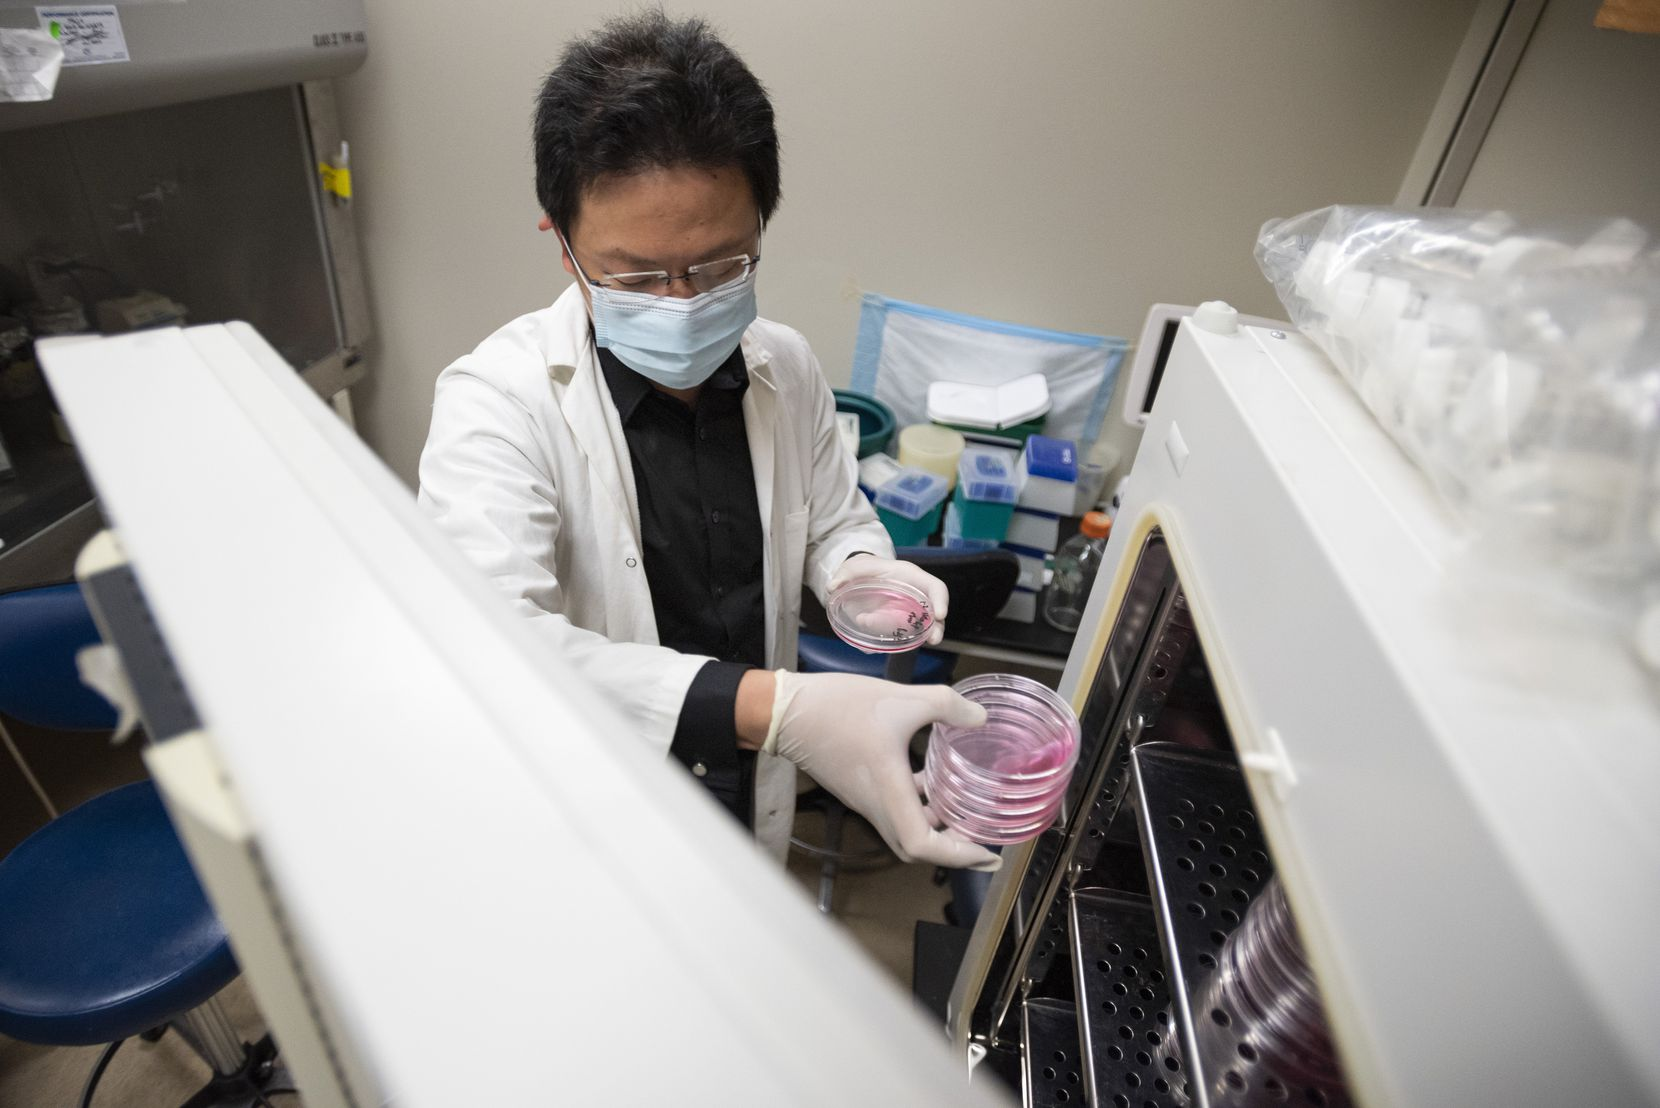 Dr. Zhihao Wu of Southern Methodist University pulls samples of growing cancer cells from a laboratory refrigerator in a research lab on the campus of Southern Methodist University in Dallas.